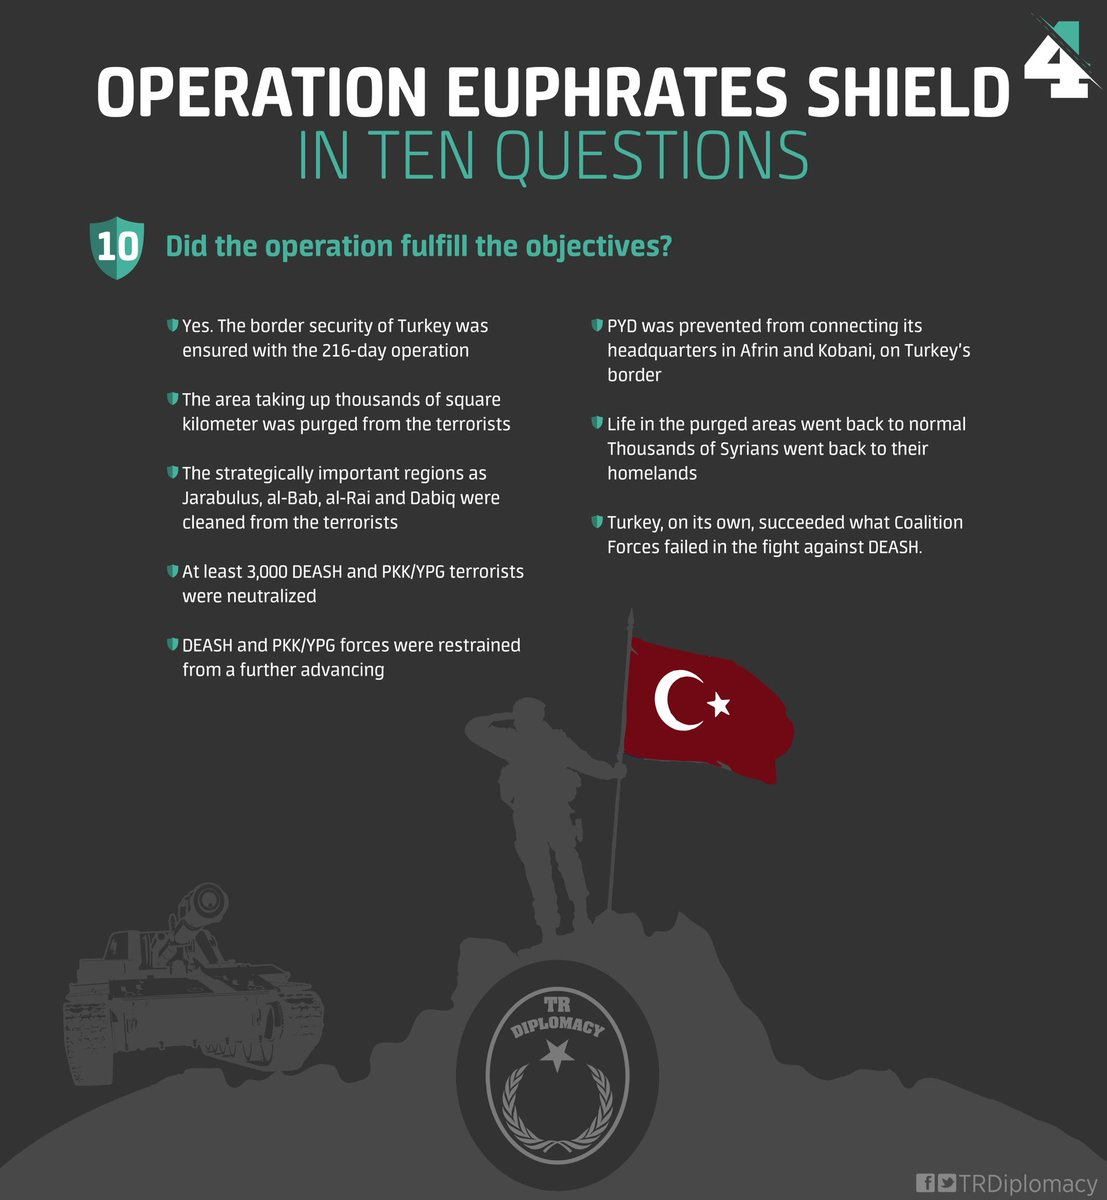 Operation Euphrates Shield in 10 questions